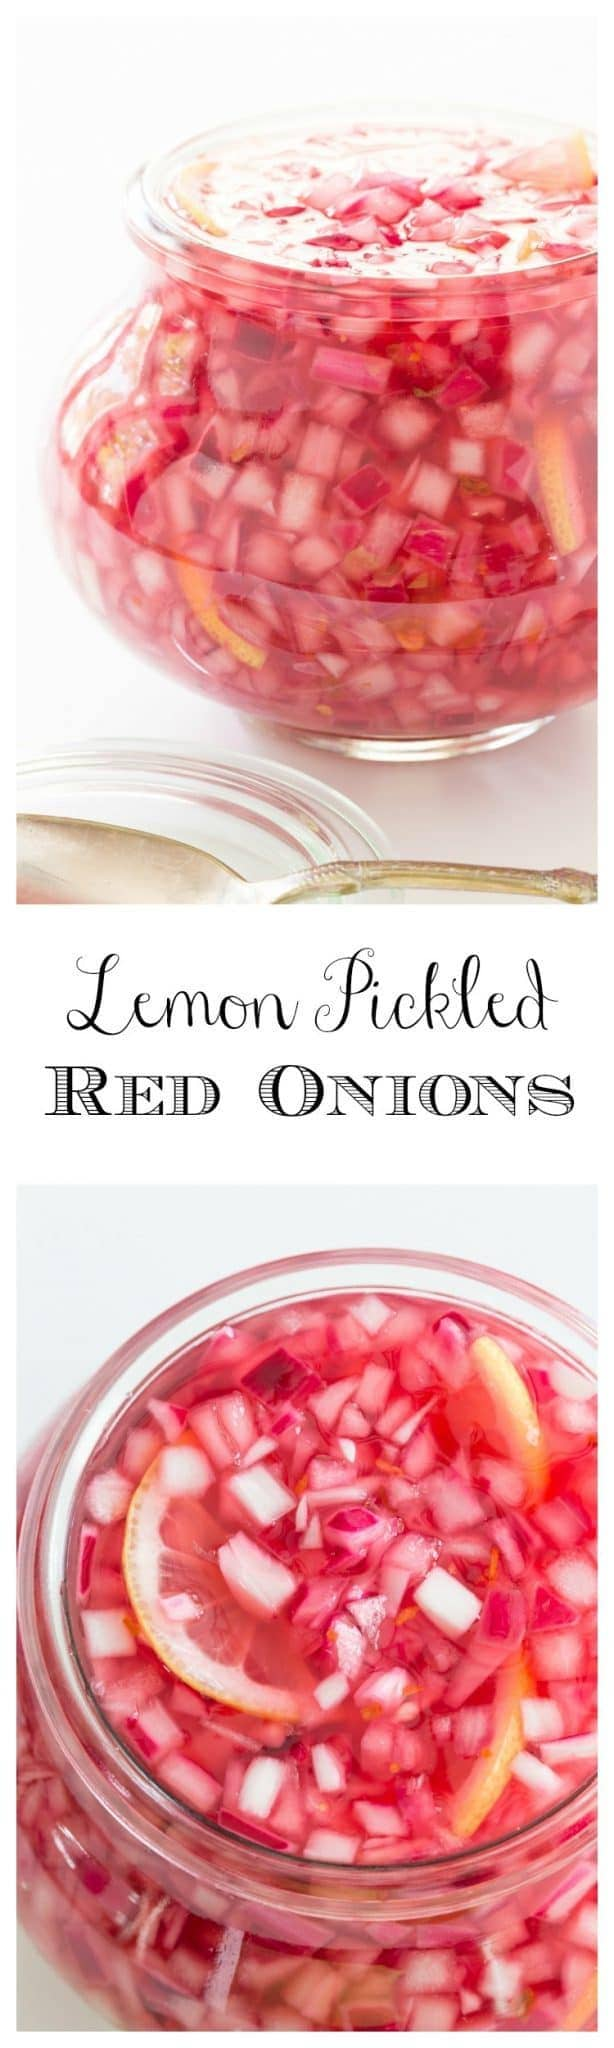 A beautiful and delicious condiment that takes less than 10 minutes to throw together. Perfect on everything!